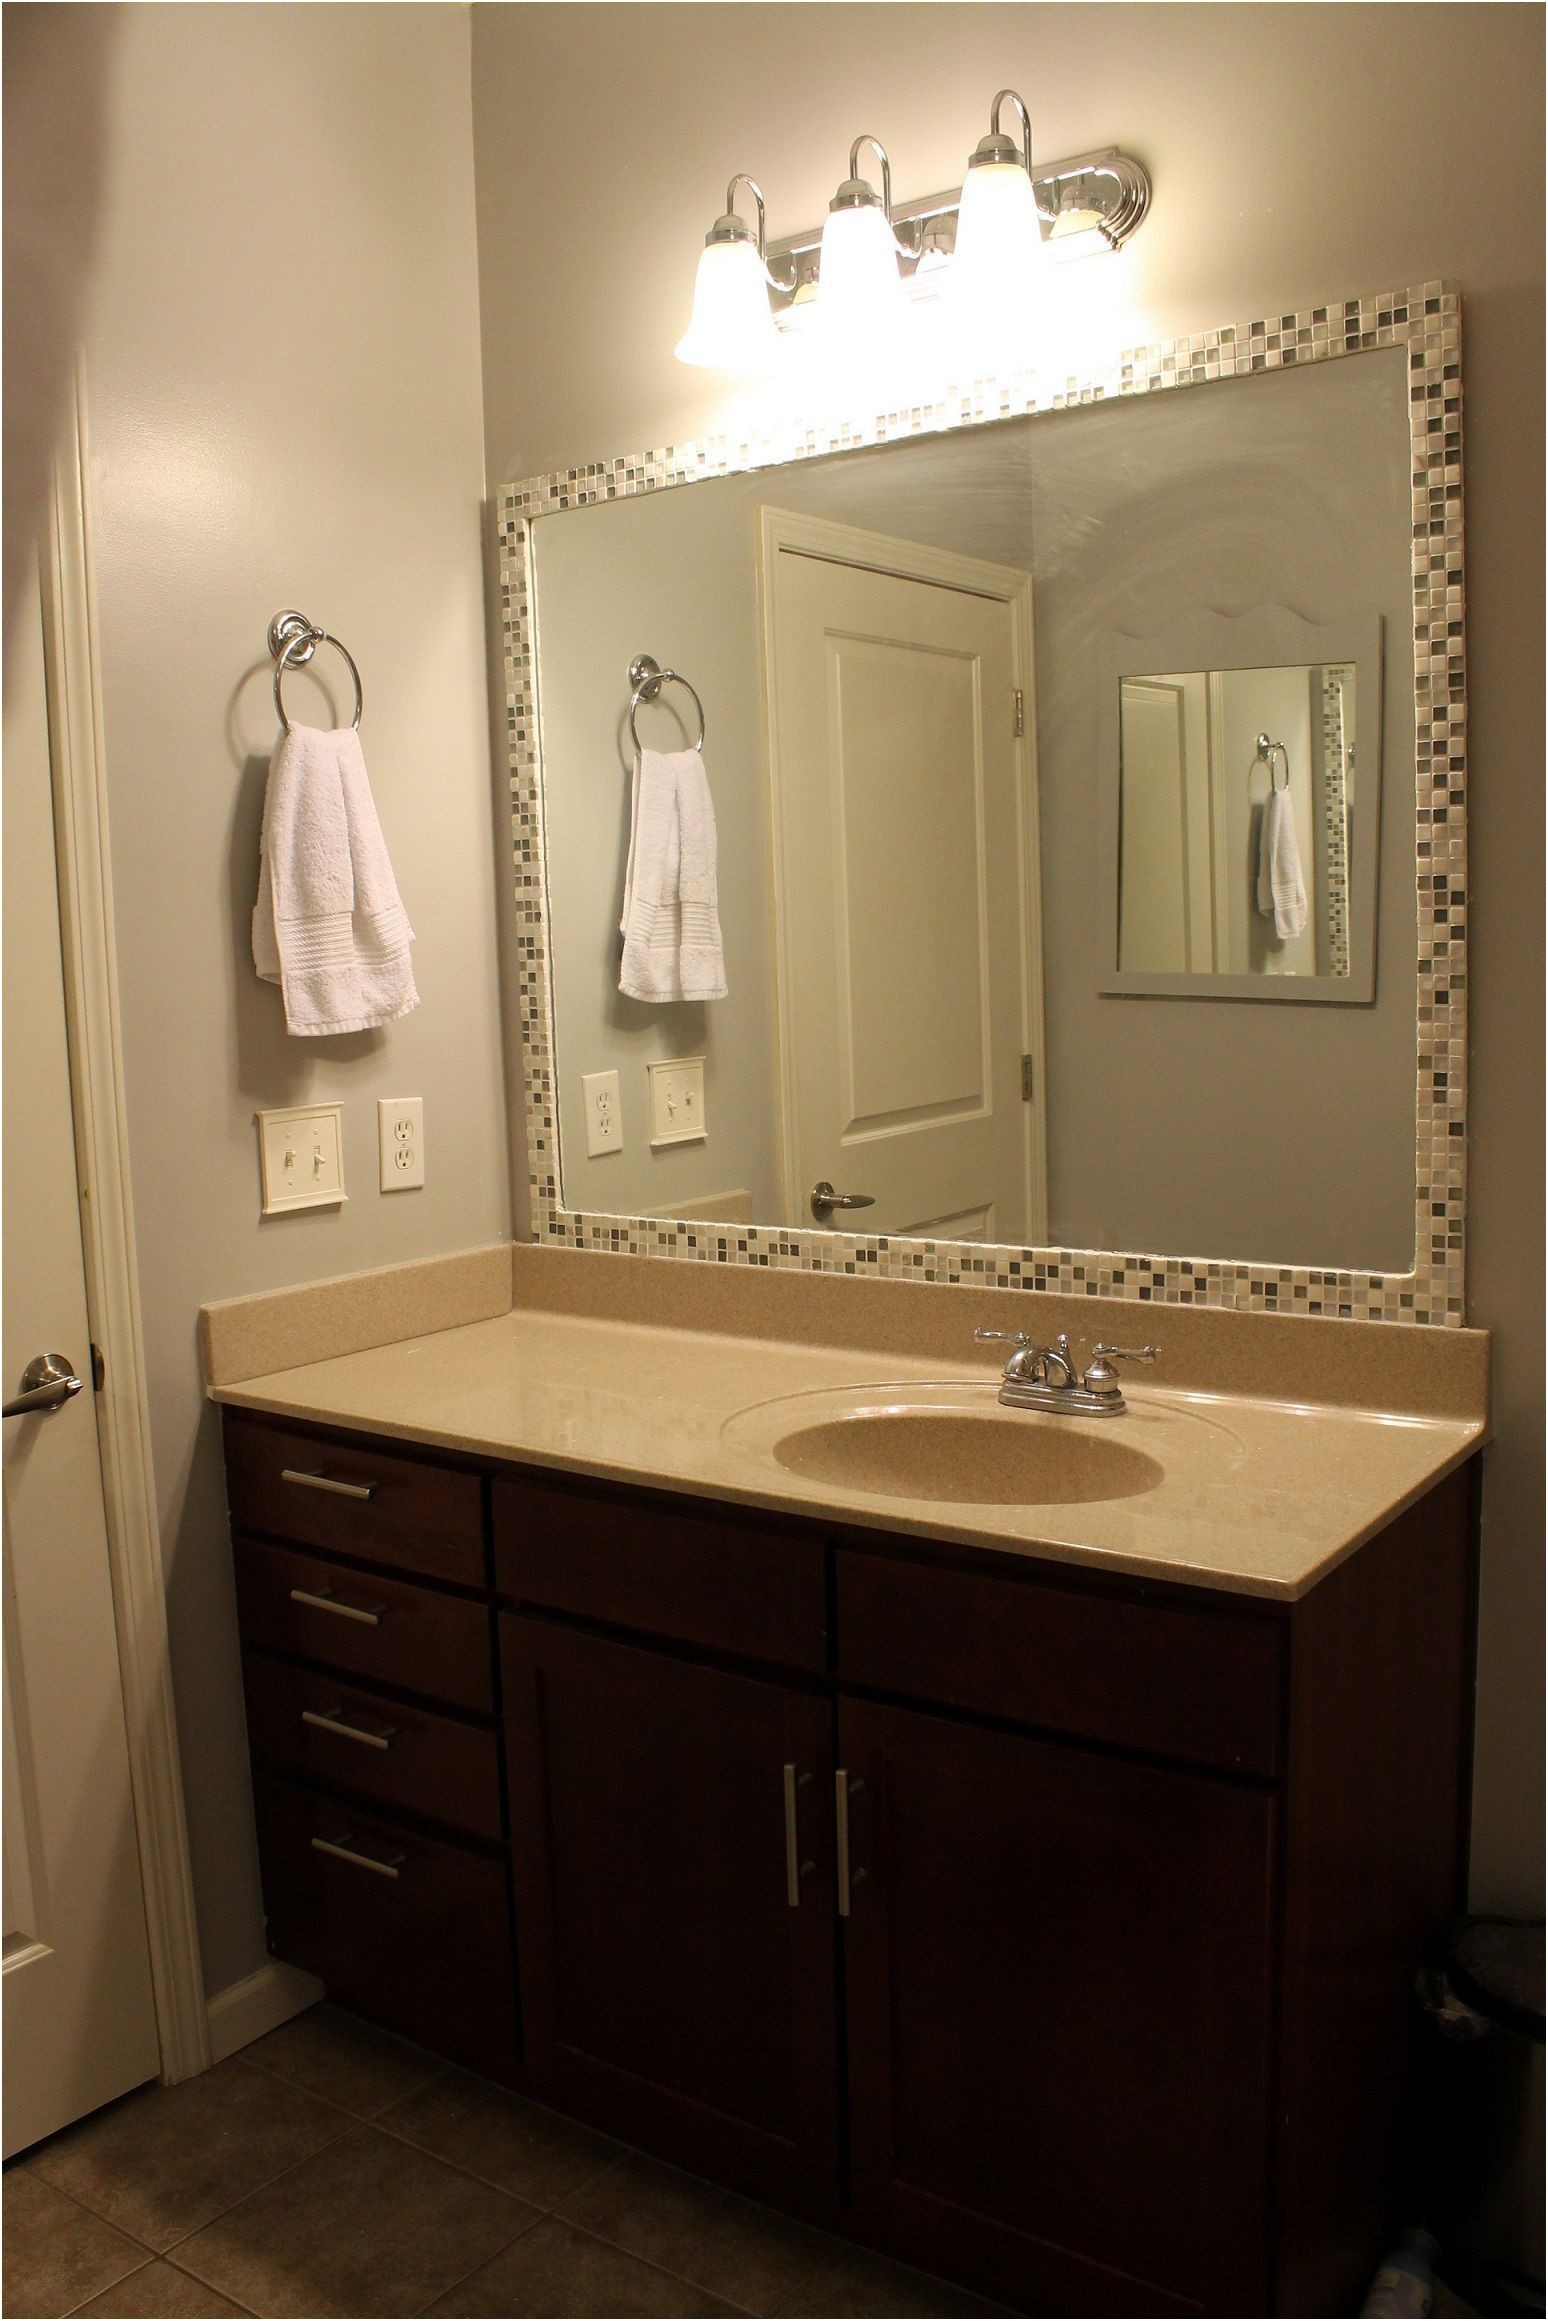 Elegant Framing Large Mirror In Bathroom